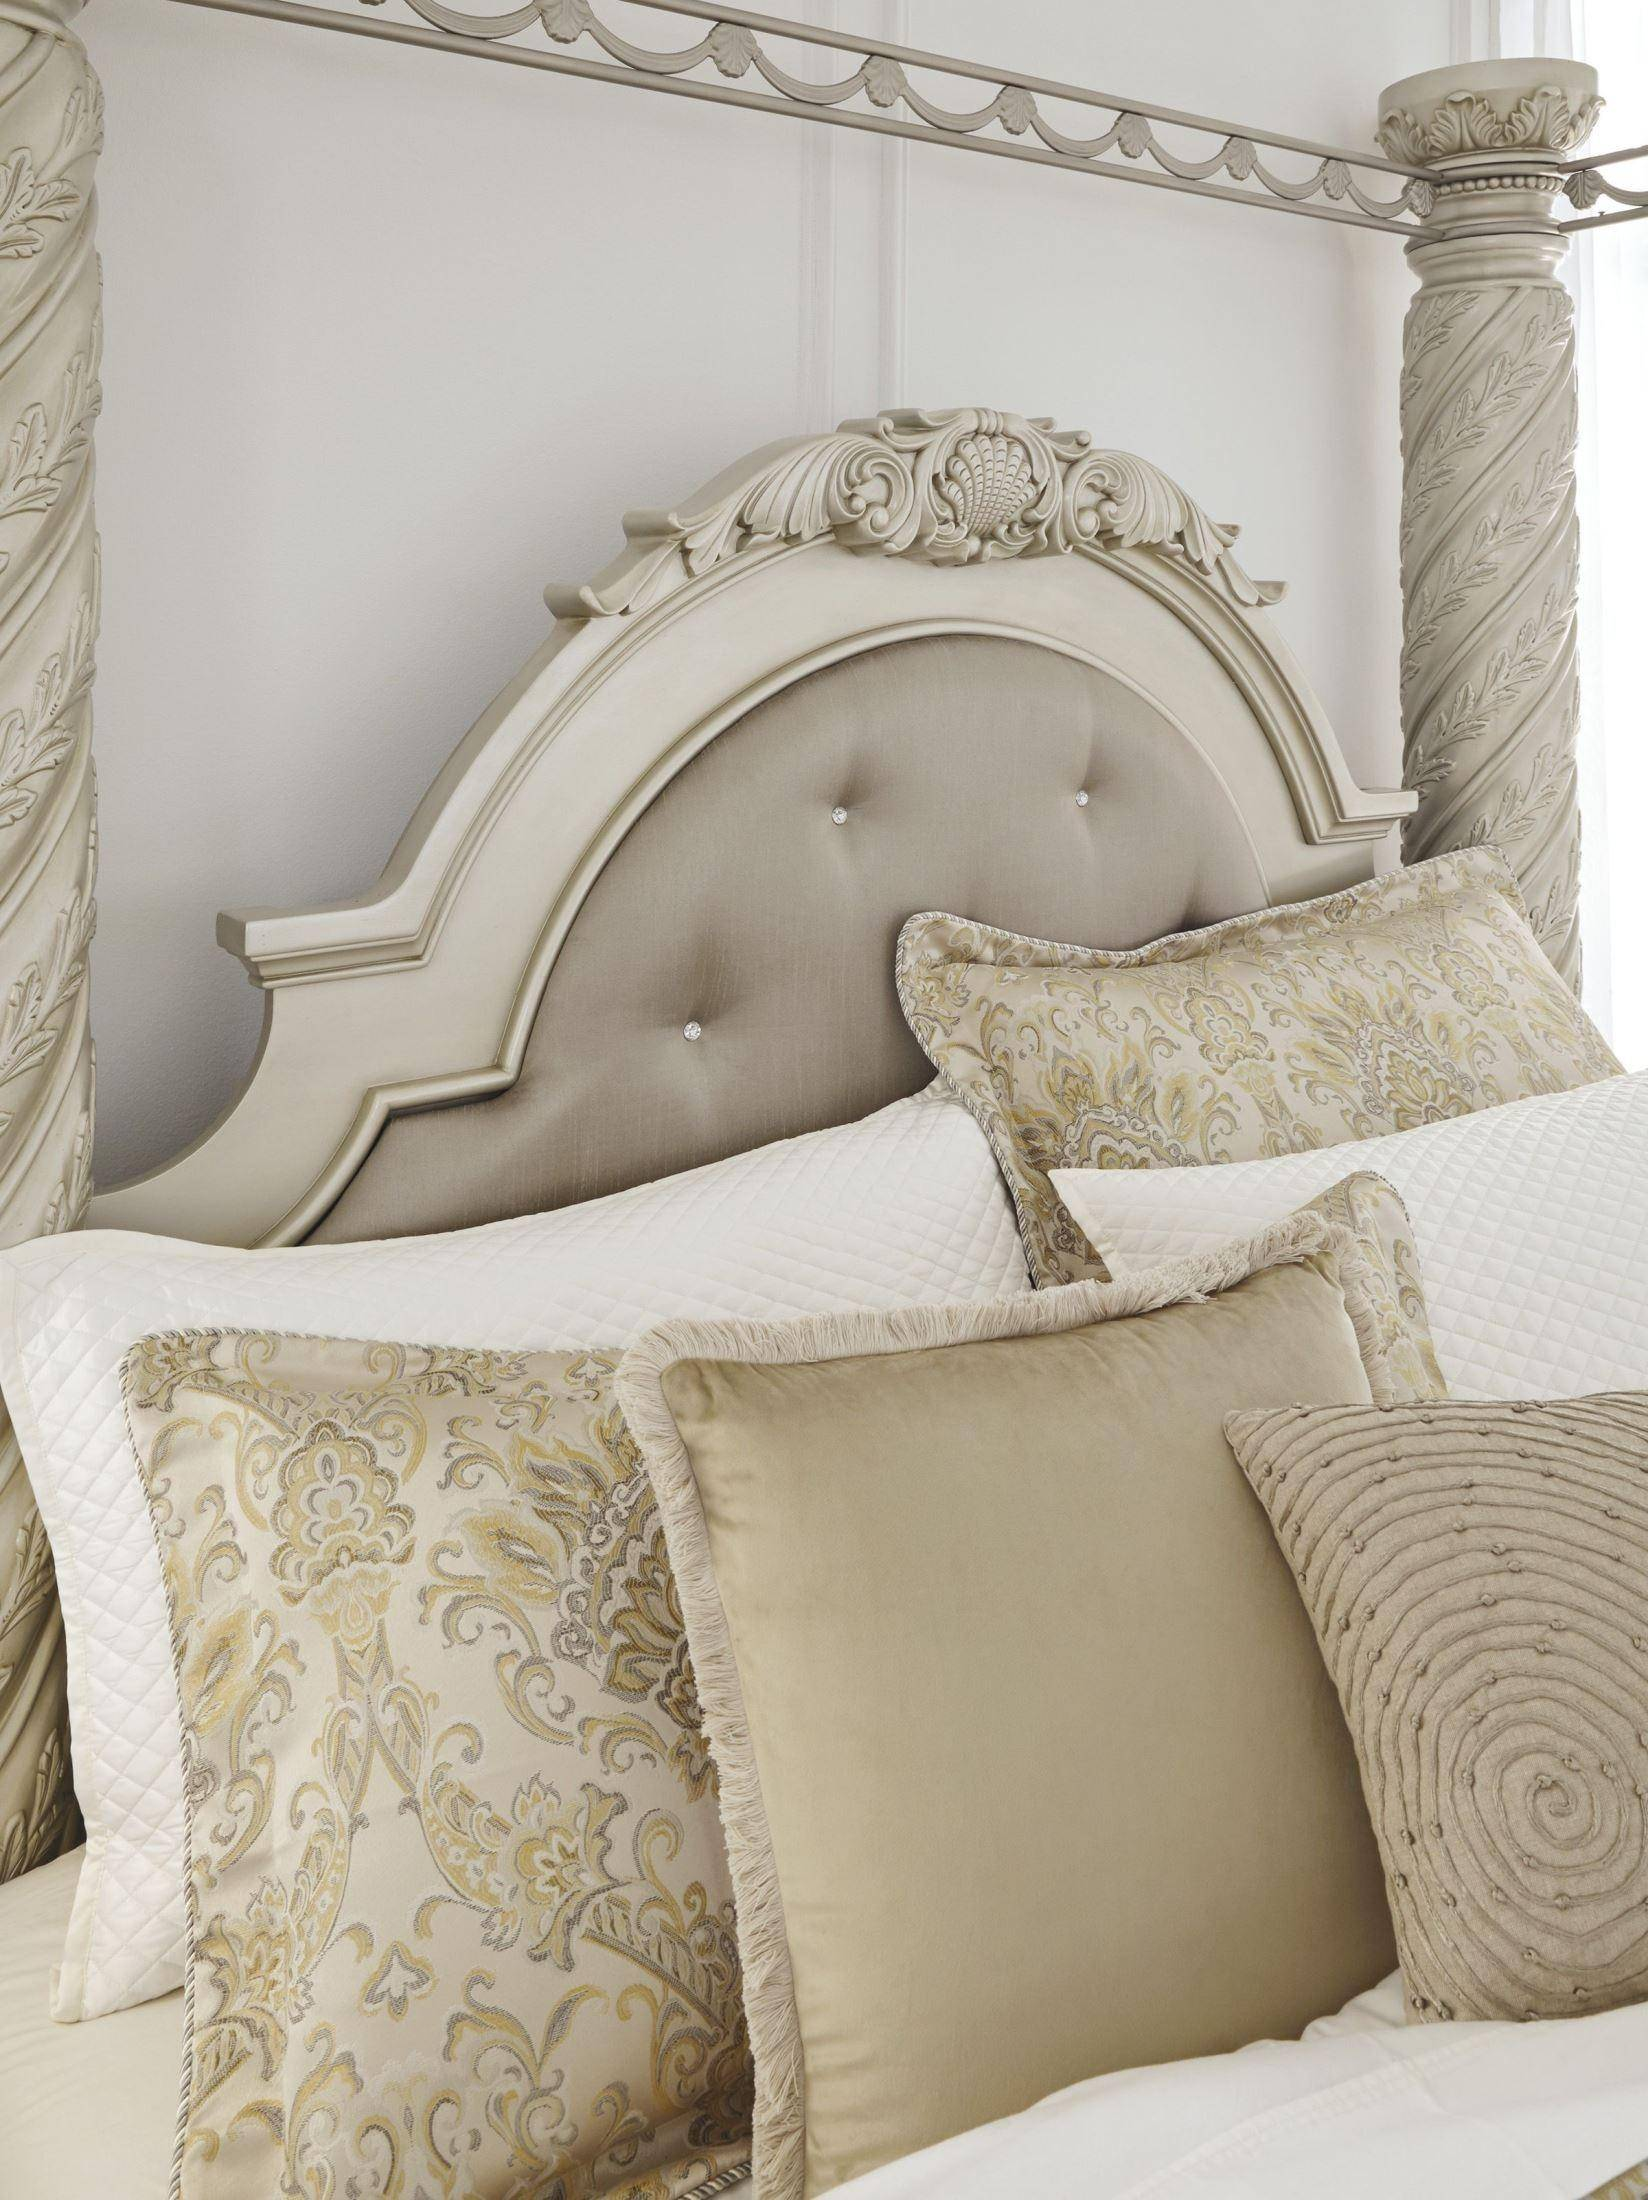 Ashley Cassimore B750 King Size Canopy Uph Bedroom Set 5pcs In Pearl Silver B750 58 56 97 31 36 93 2 Set 5